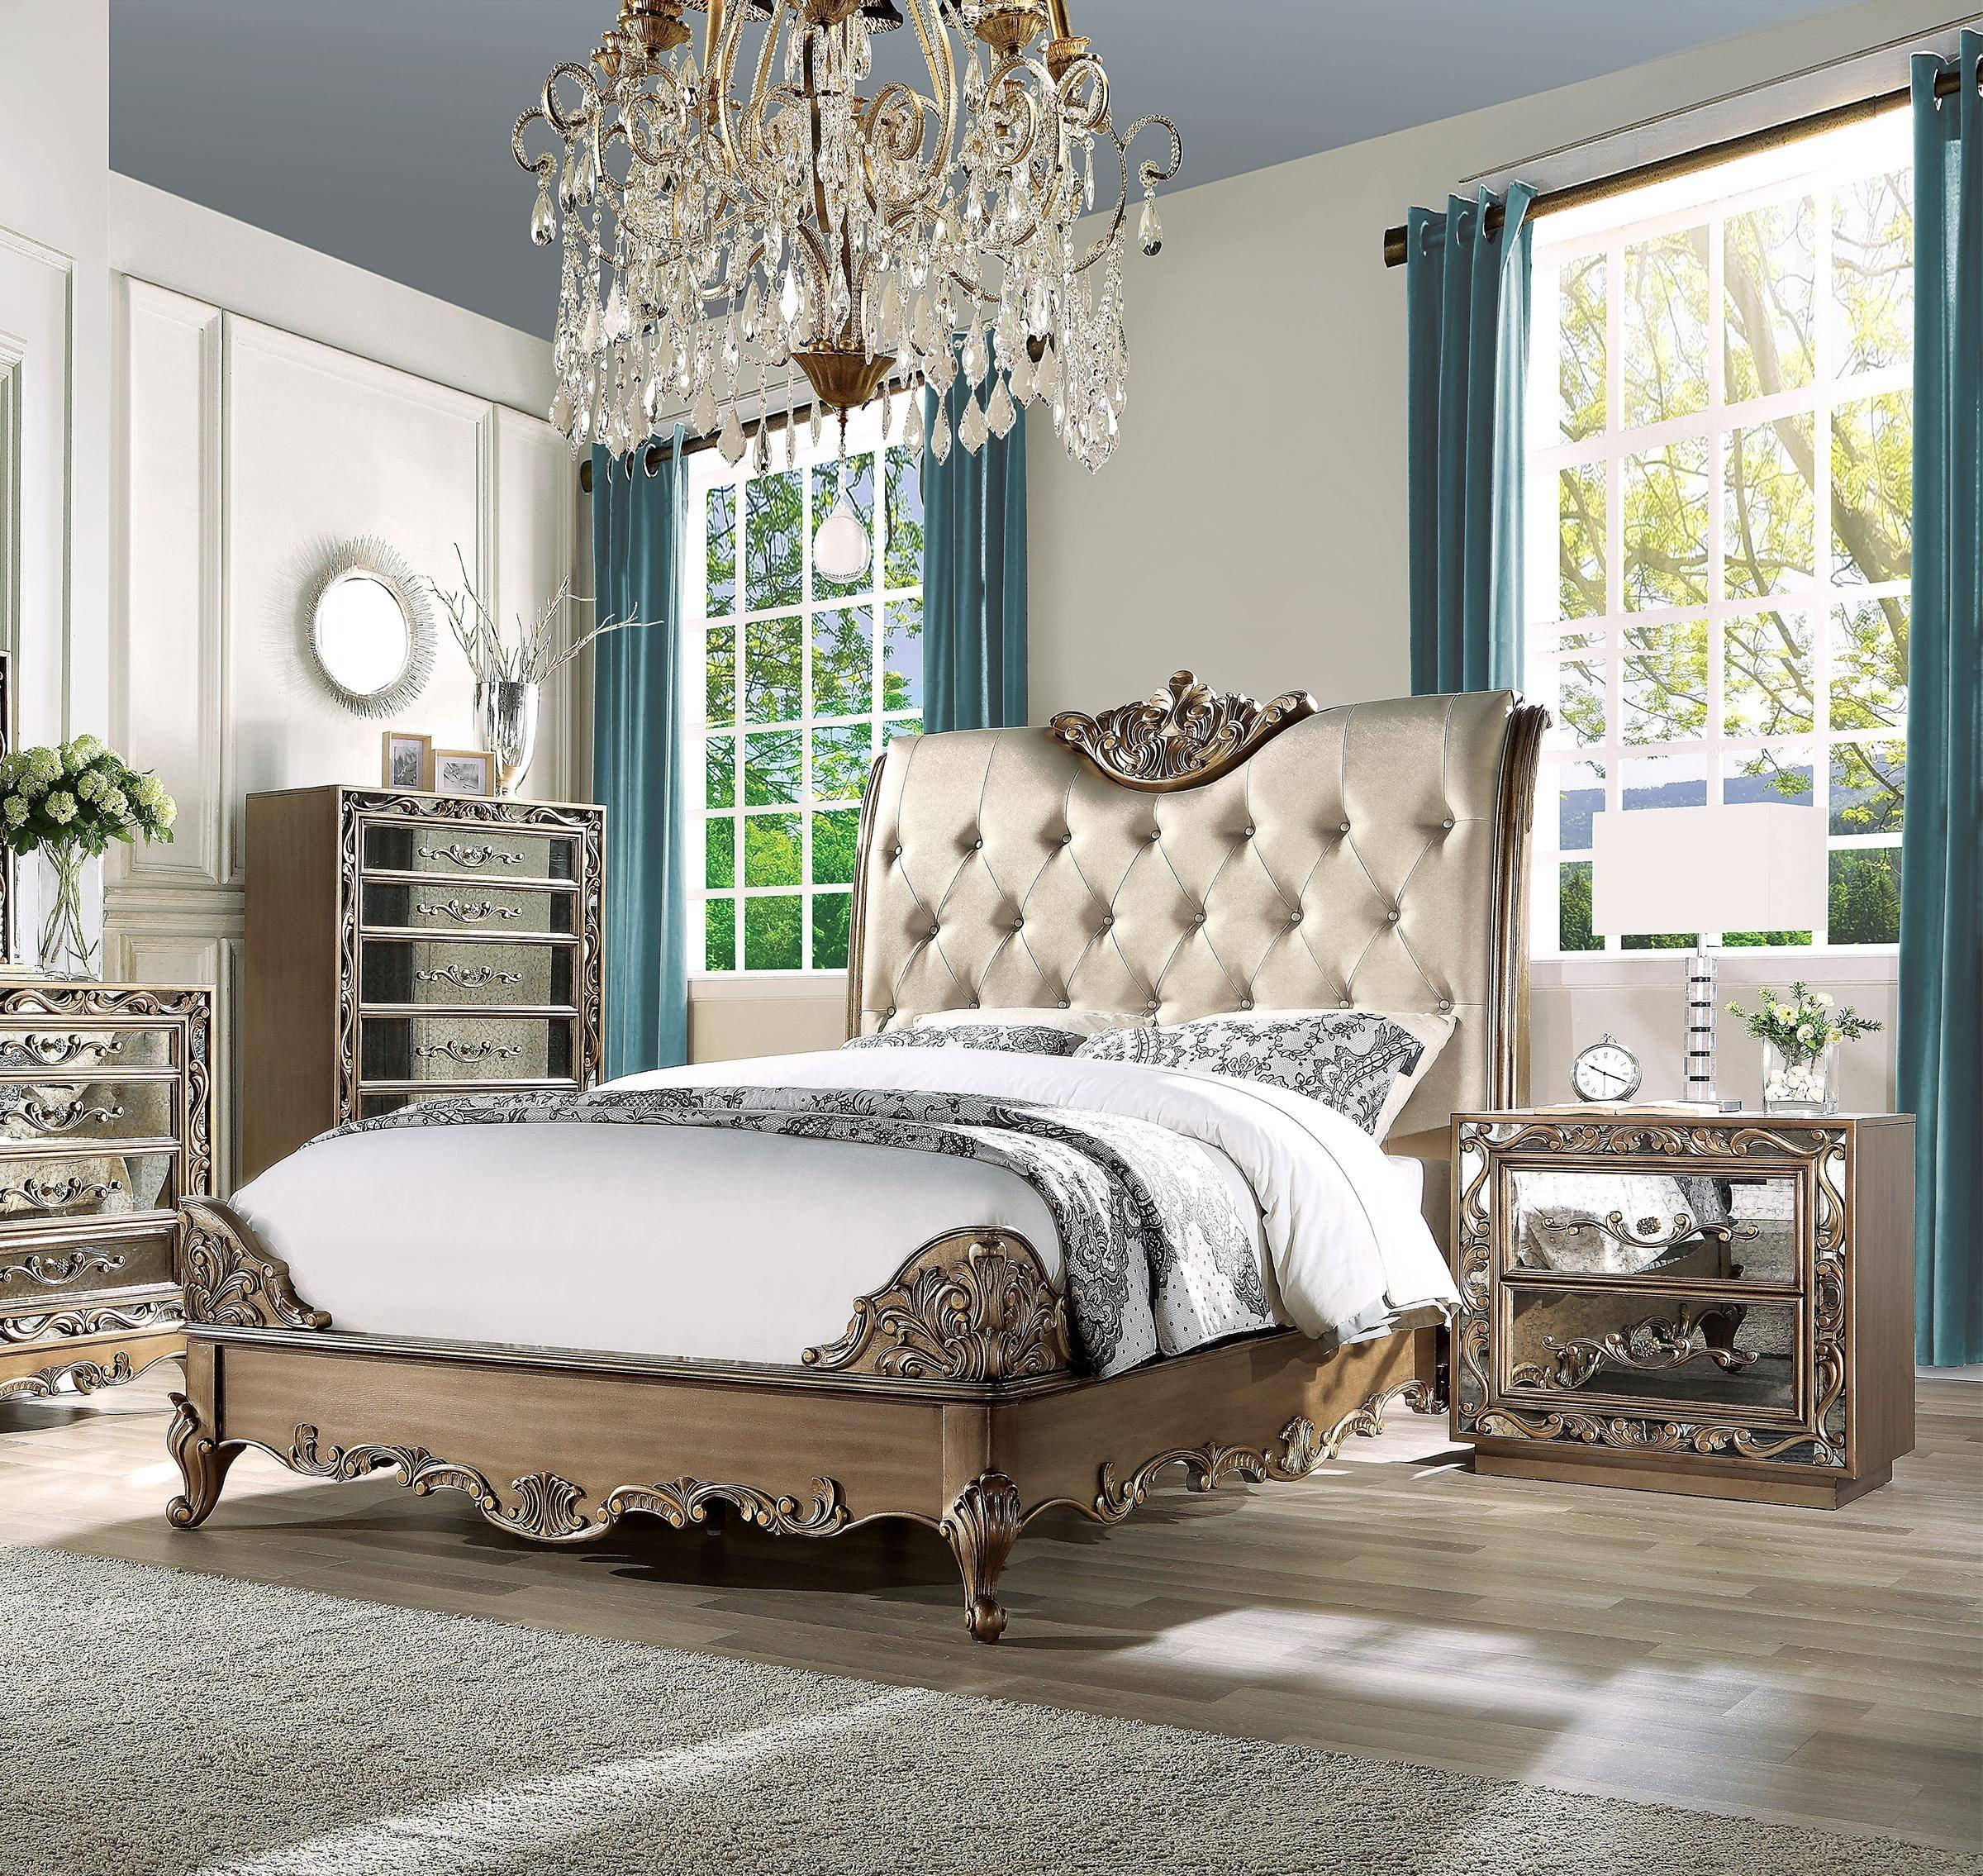 Affordable King Bedroom Set Beautiful Luxury King Bedroom Set 3 Antique Gold Champagne F Leather